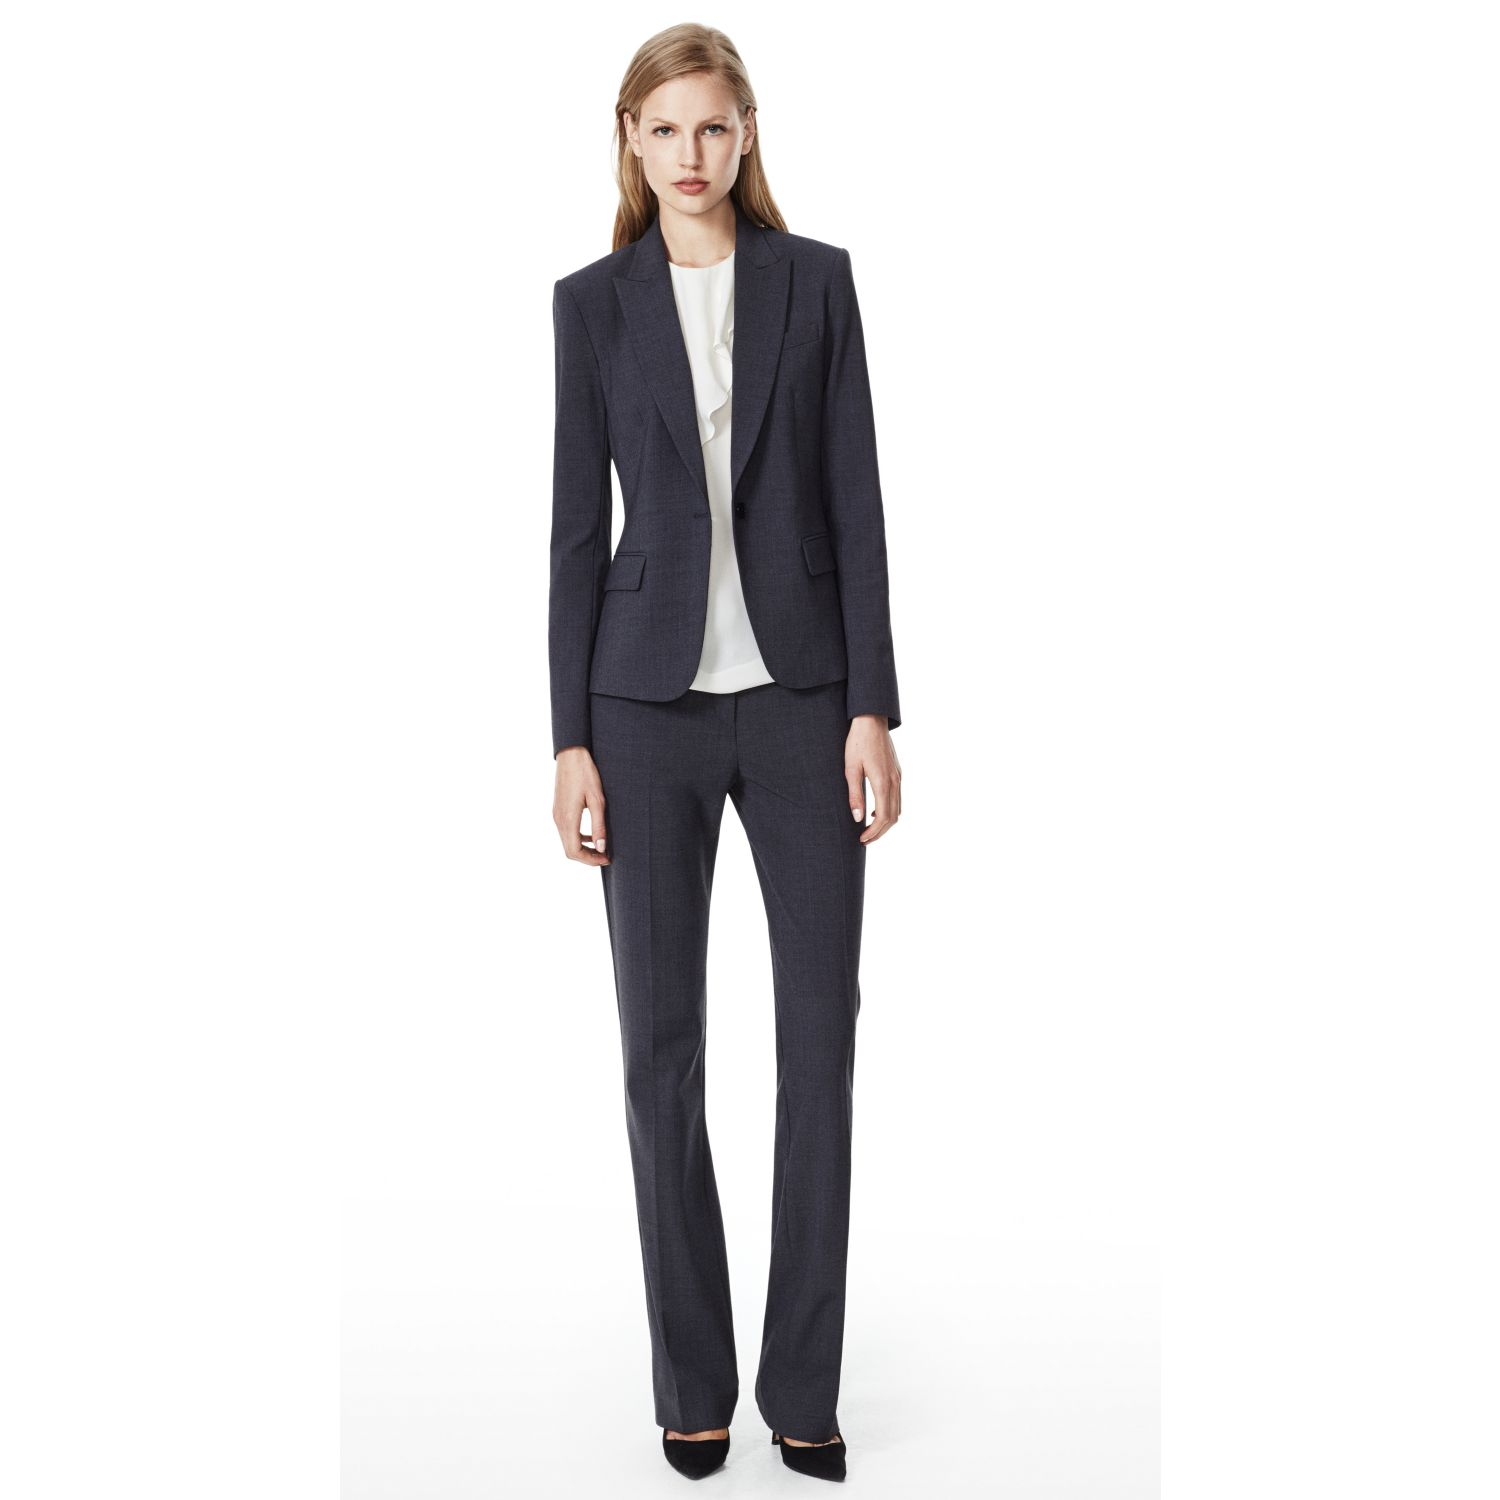 Theory Gabe B 2 Blazer In Urban Stretch Wool in Gray | Lyst